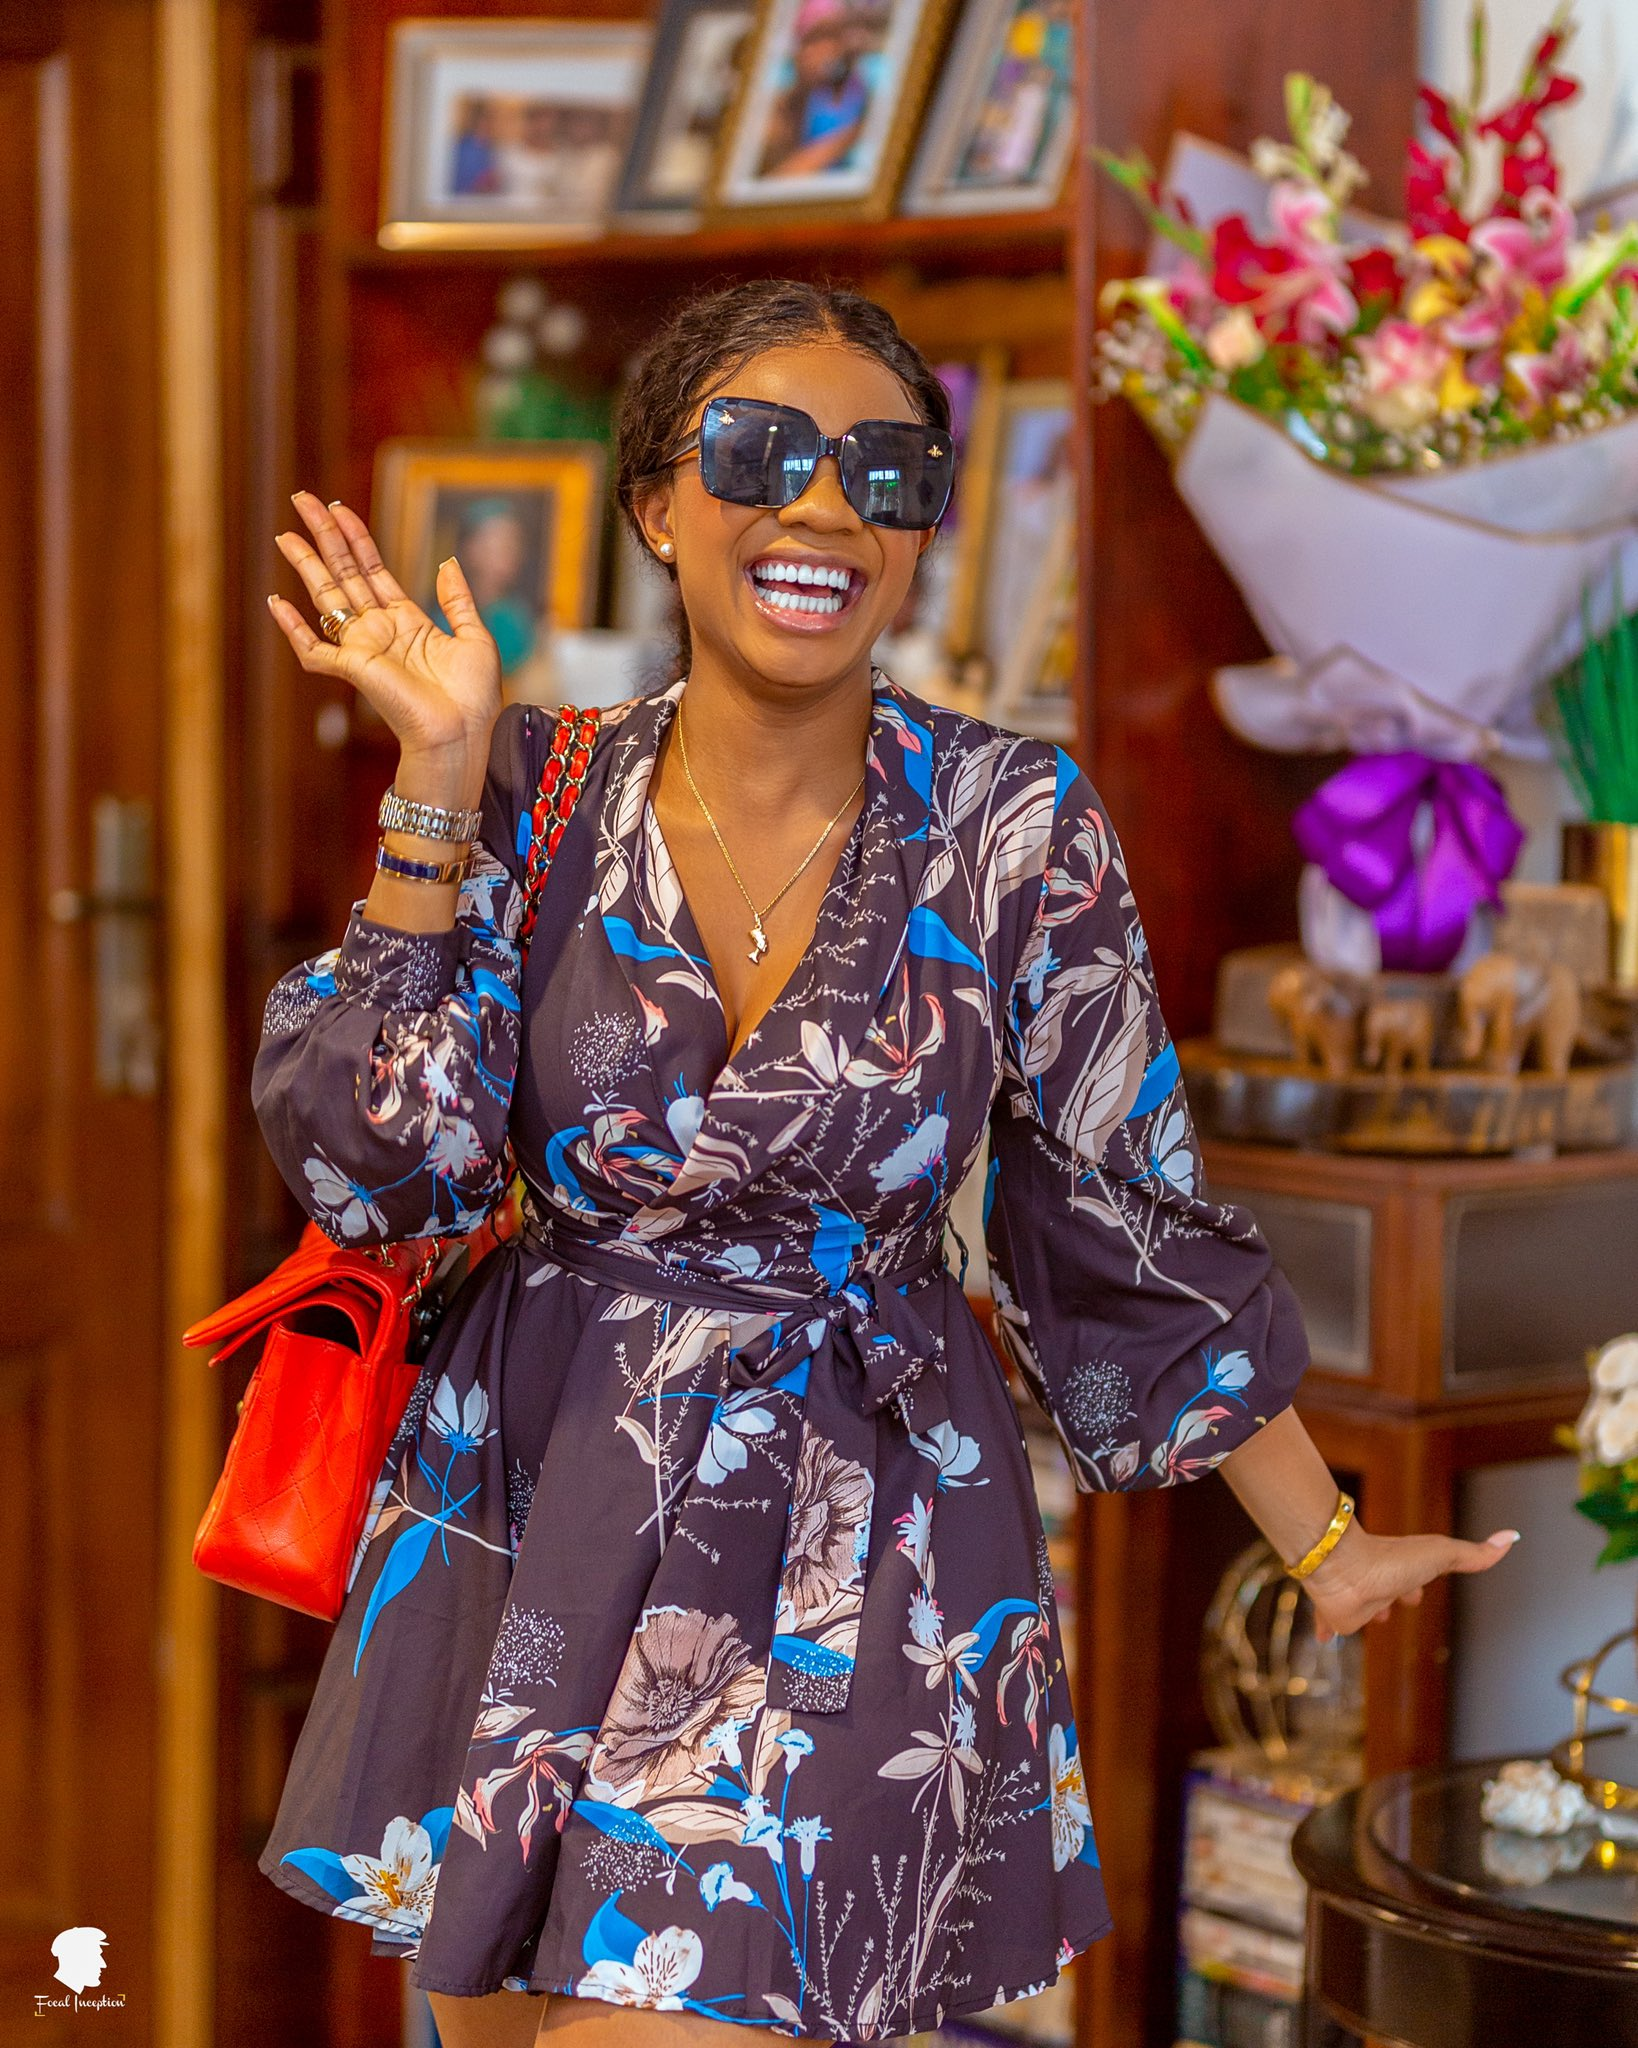 """Your beauty will fade away soon and no man will be ready to marry you"" – Fan tells Serwaa Amihere; check out her reply"